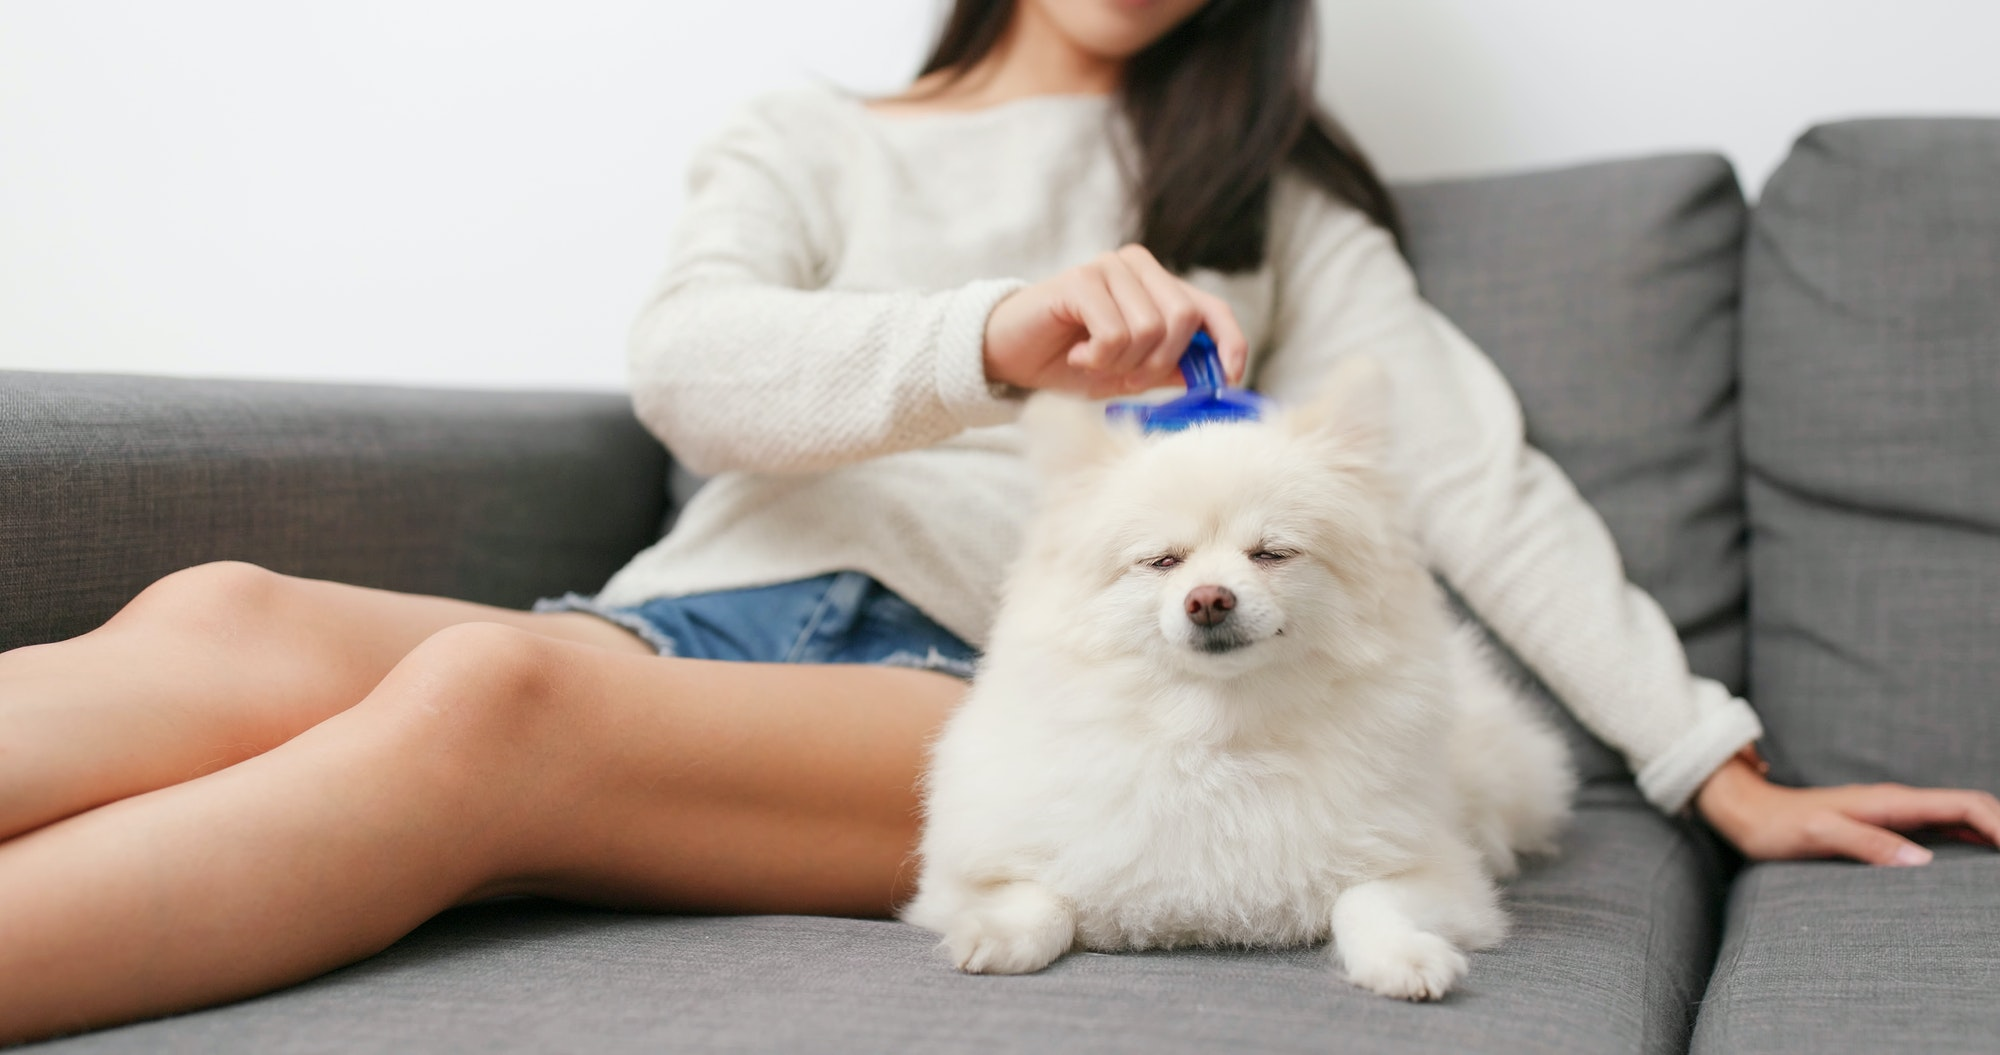 Woman brushing her dog at home